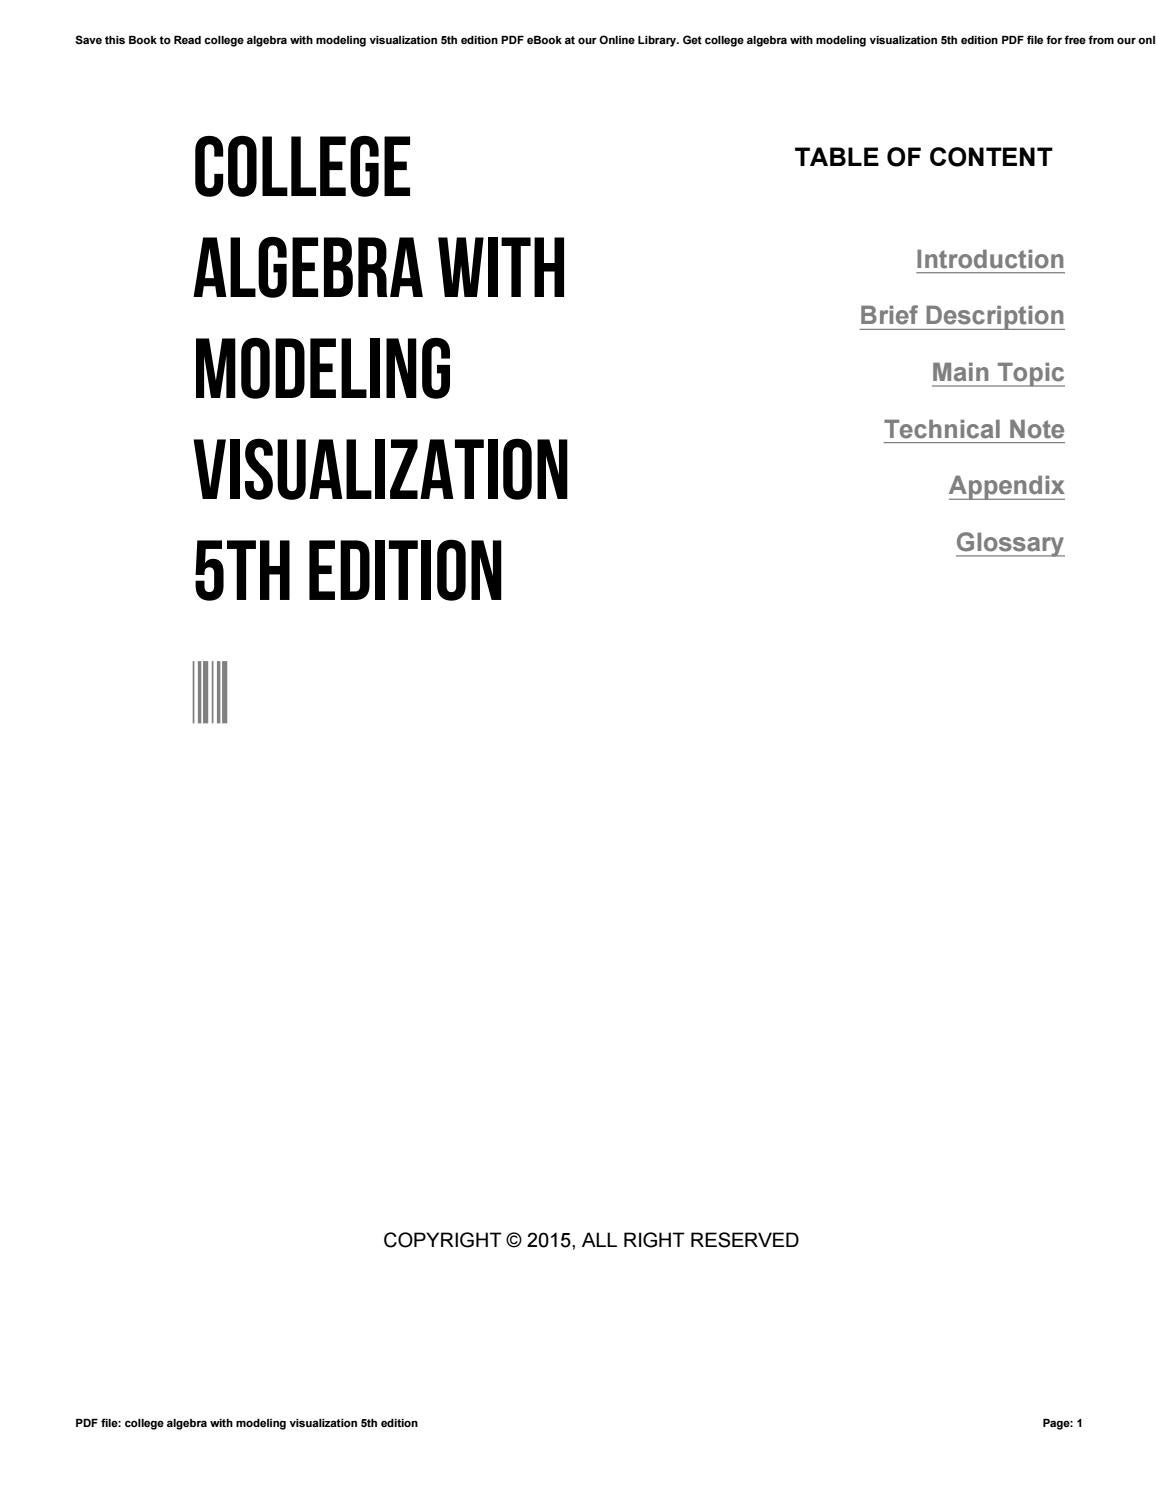 College algebra with modeling visualization 5th edition by ...